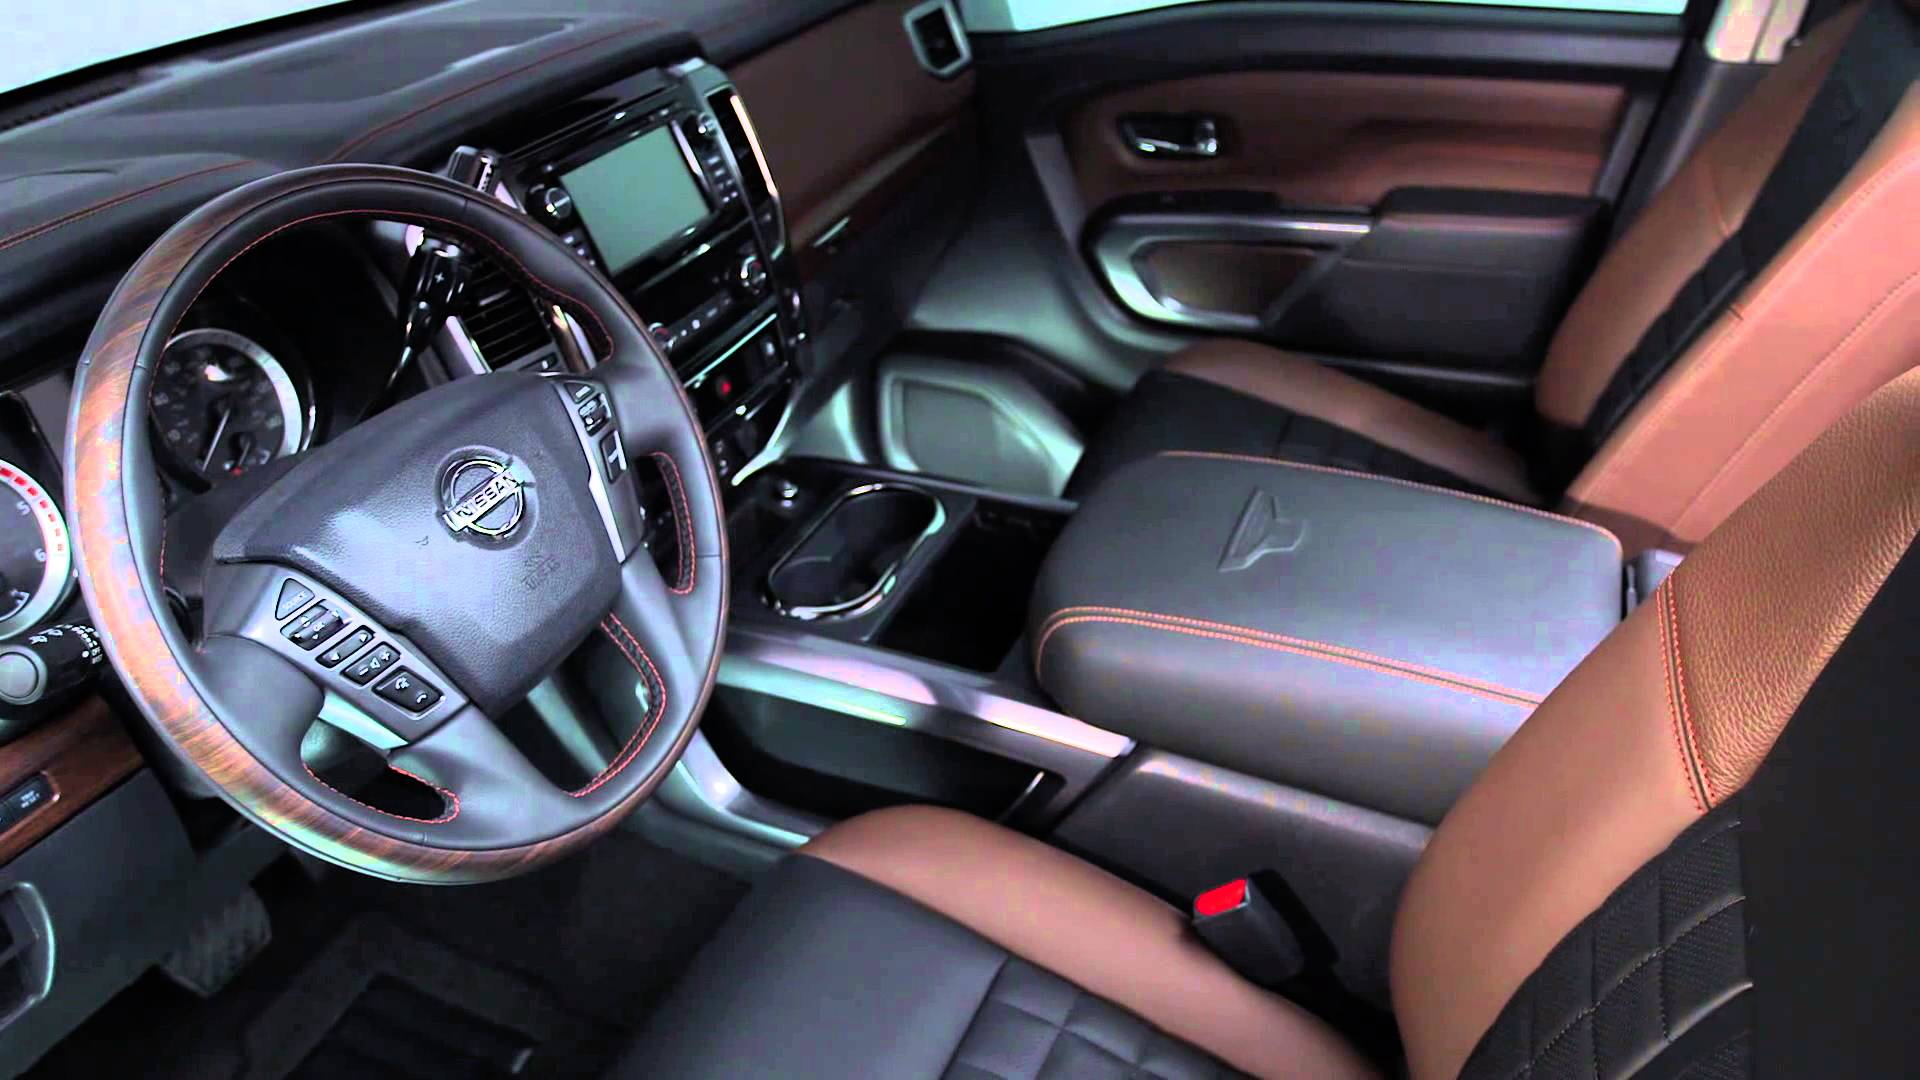 2016 Nissan Titan Interior Preview (View 7 of 10)